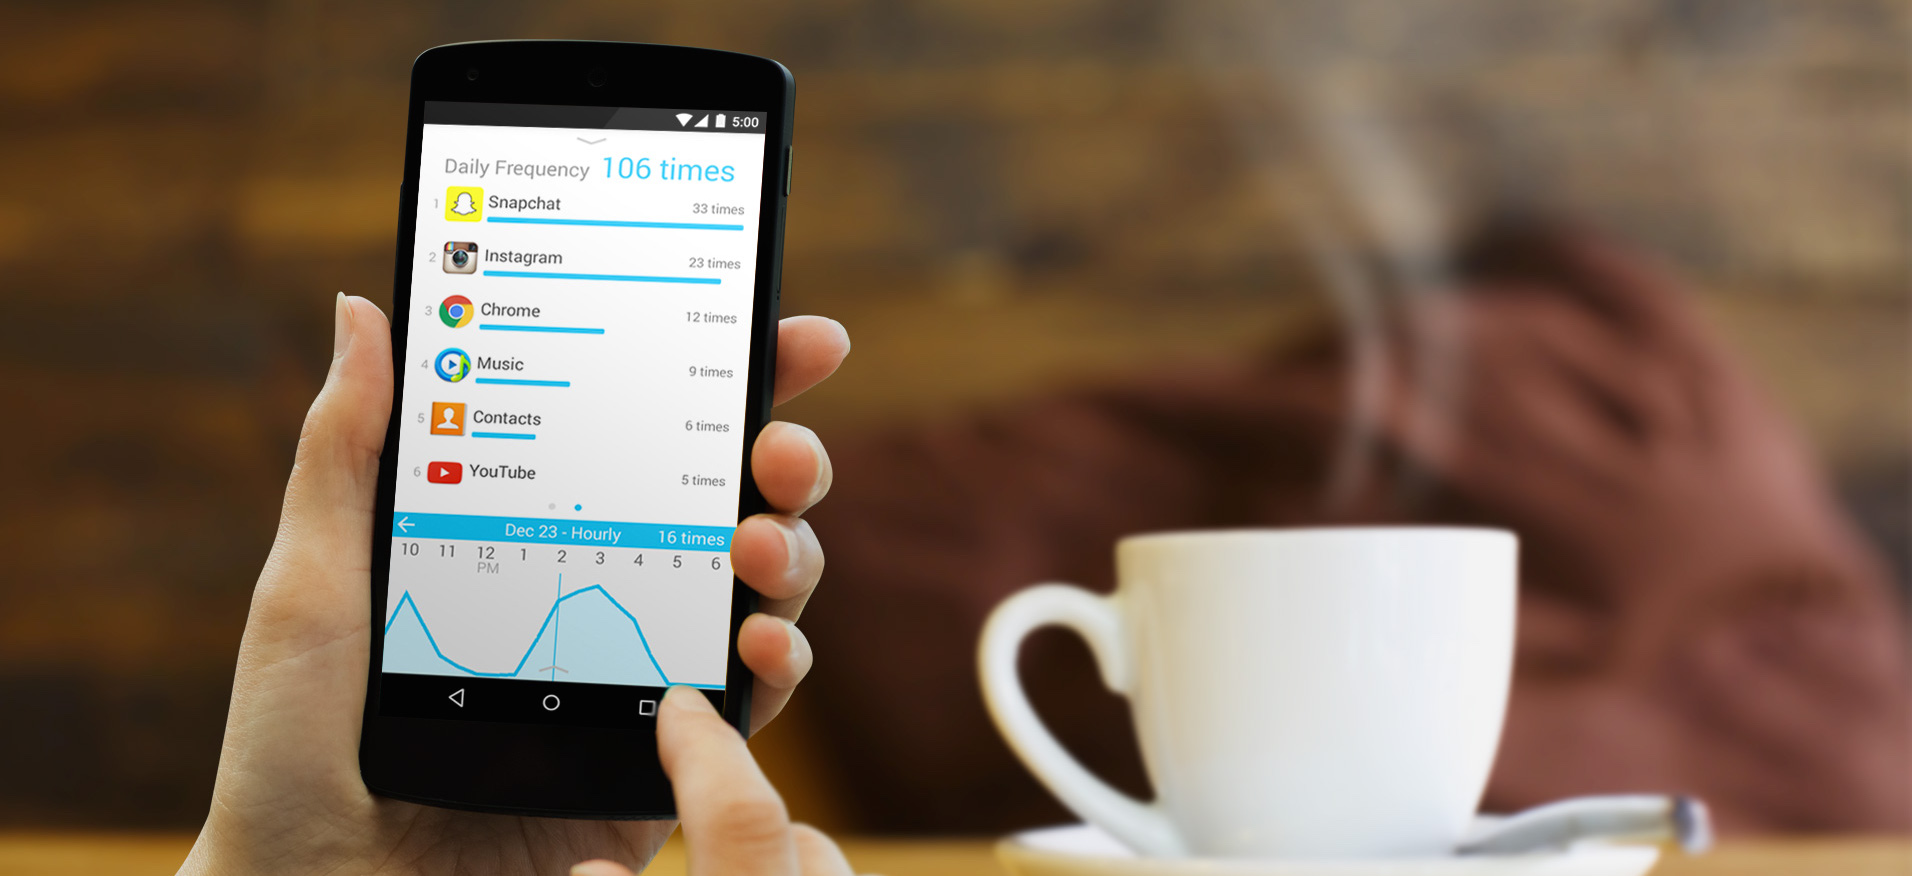 QualityTime Tracks How Much You Use Your Android Phone